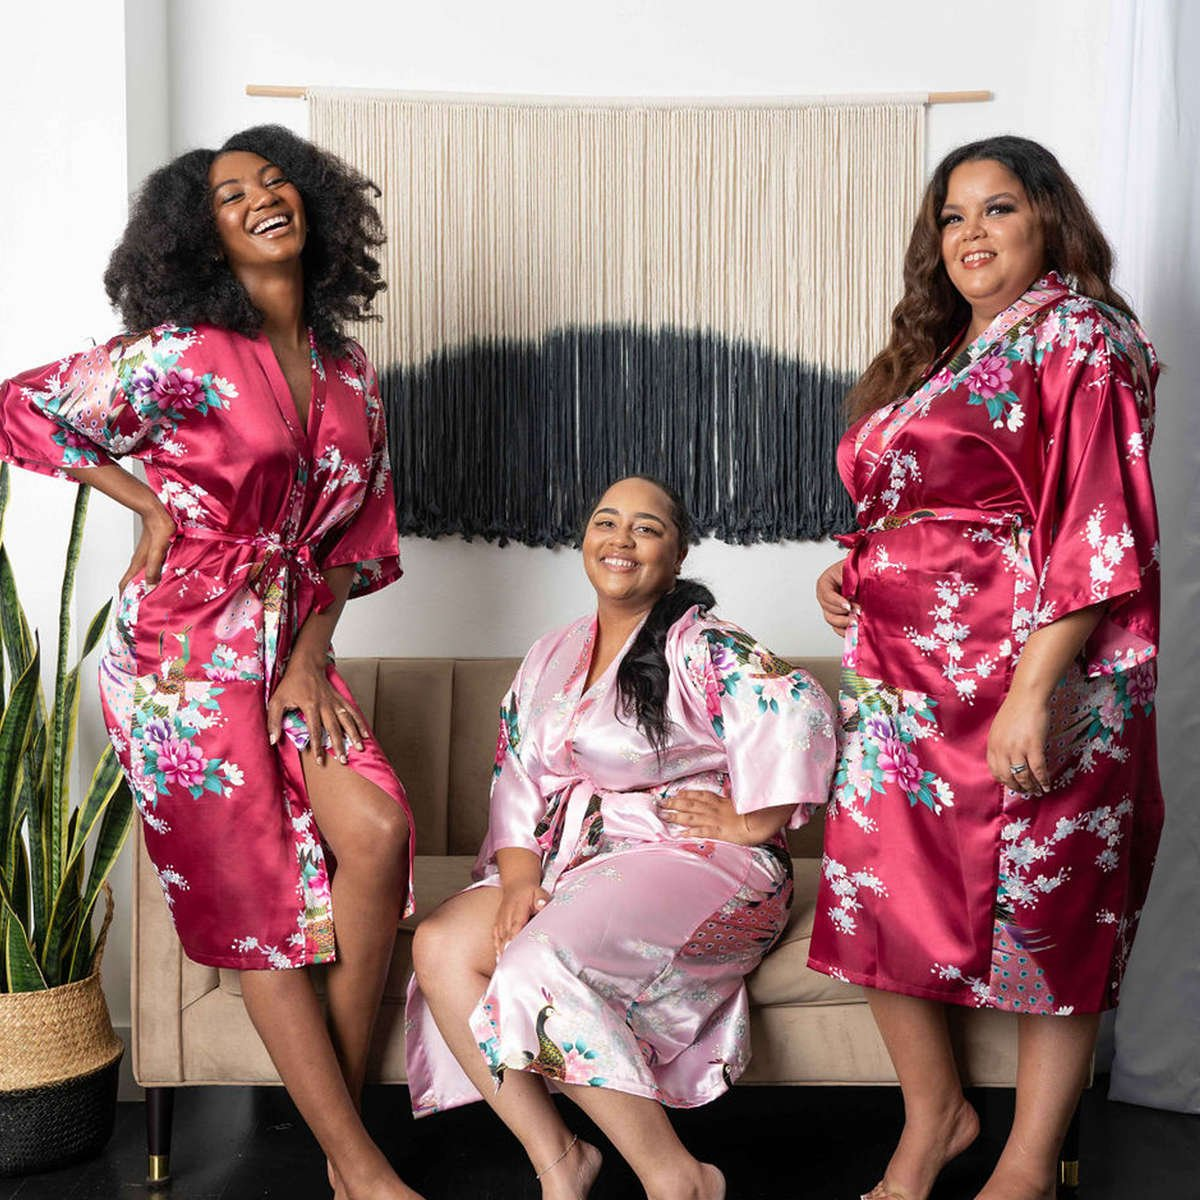 Womens Floral Kimono Robe - Getting Ready Robes - Flower Girl Robes - Bridesmaid Robes